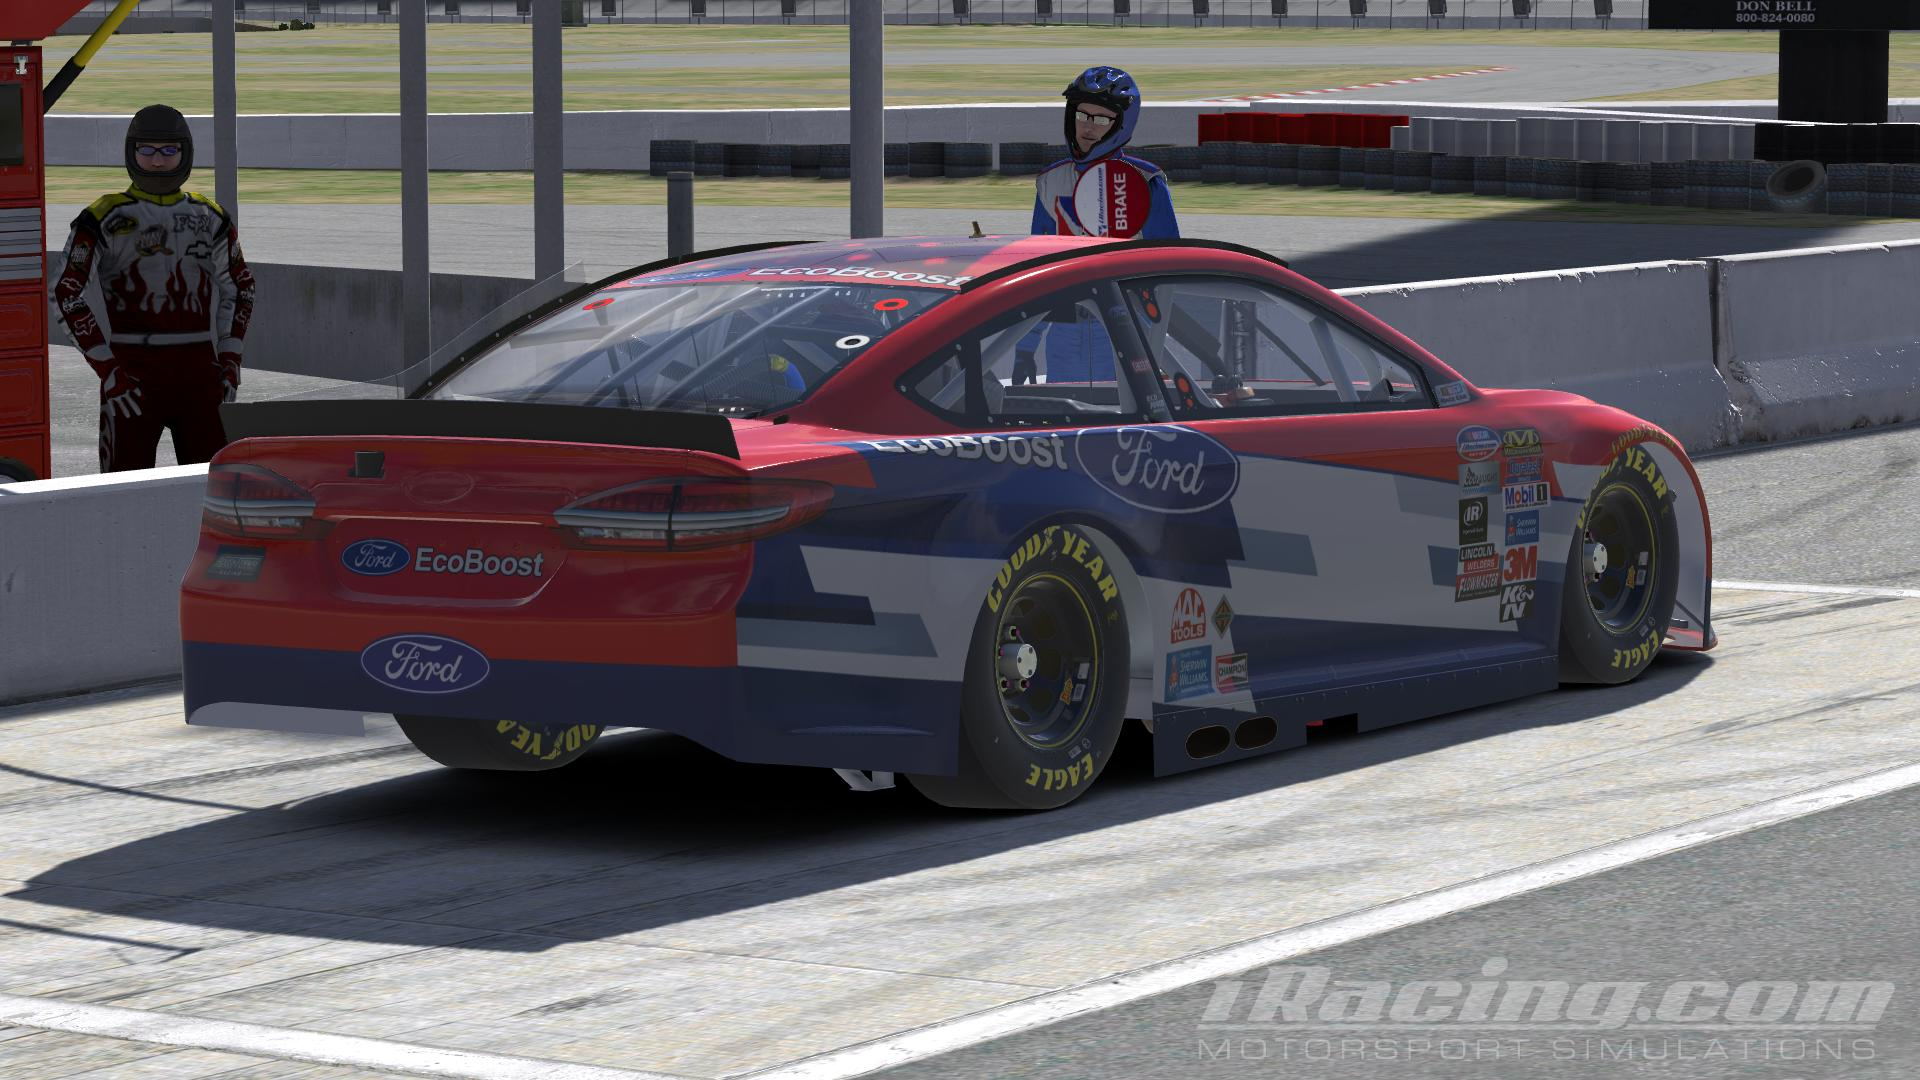 Preview of #16 Greg Biffle Ford EcoBoost 2016 by Udo Washeim